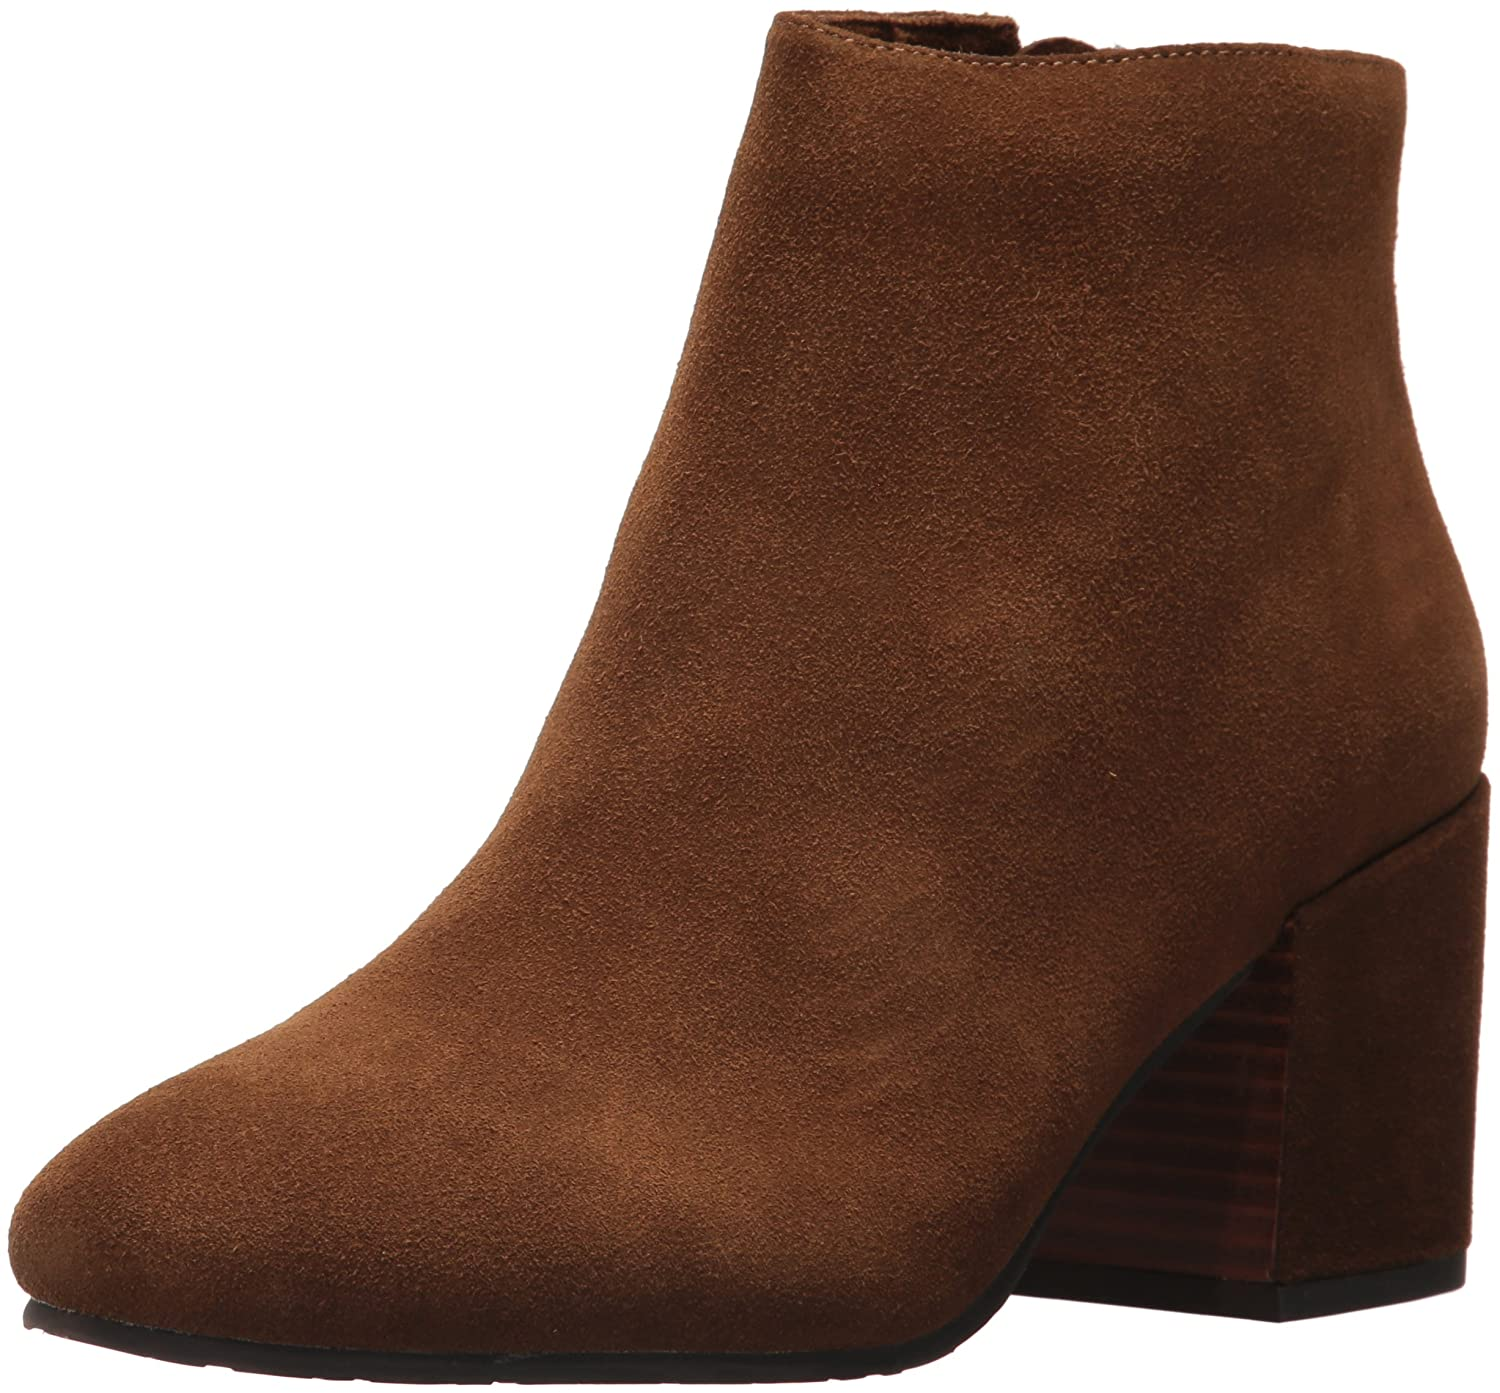 Gentle Souls by Kenneth Cole Women's Blaise Ankle Bootie with Side Zip, Covered Block Heel Suede Ankle Bootie B07259HC5D 6 B(M) US|Walnut